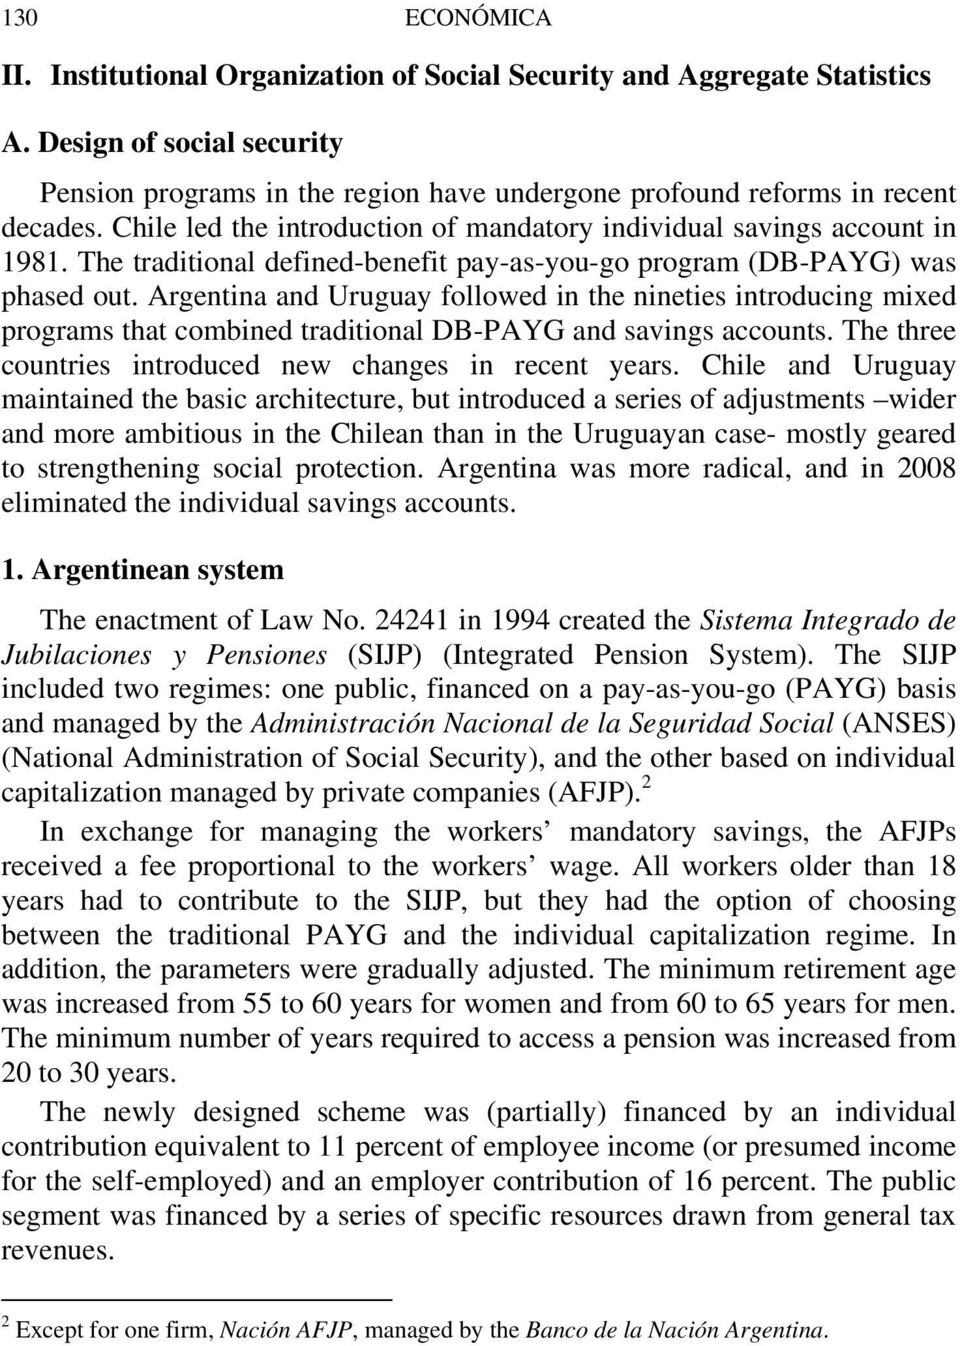 Argentina and Uruguay followed in the nineties introducing mixed programs that combined traditional DB-PAYG and savings accounts. The three countries introduced new changes in recent years.